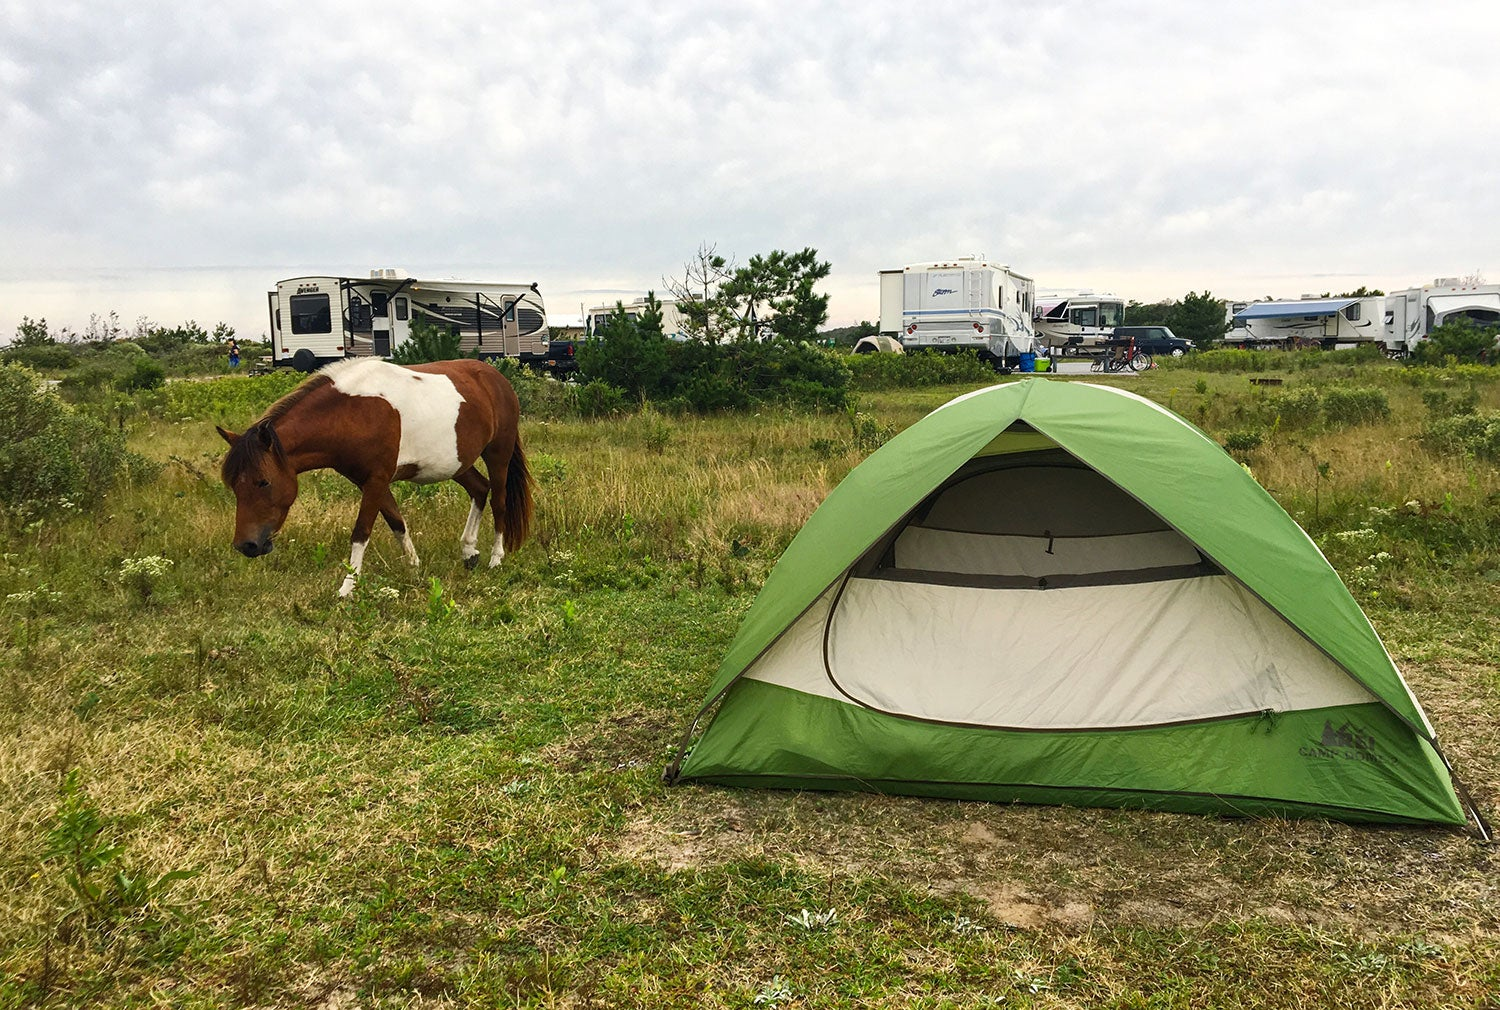 pony grazes beside green tent in a group camping field